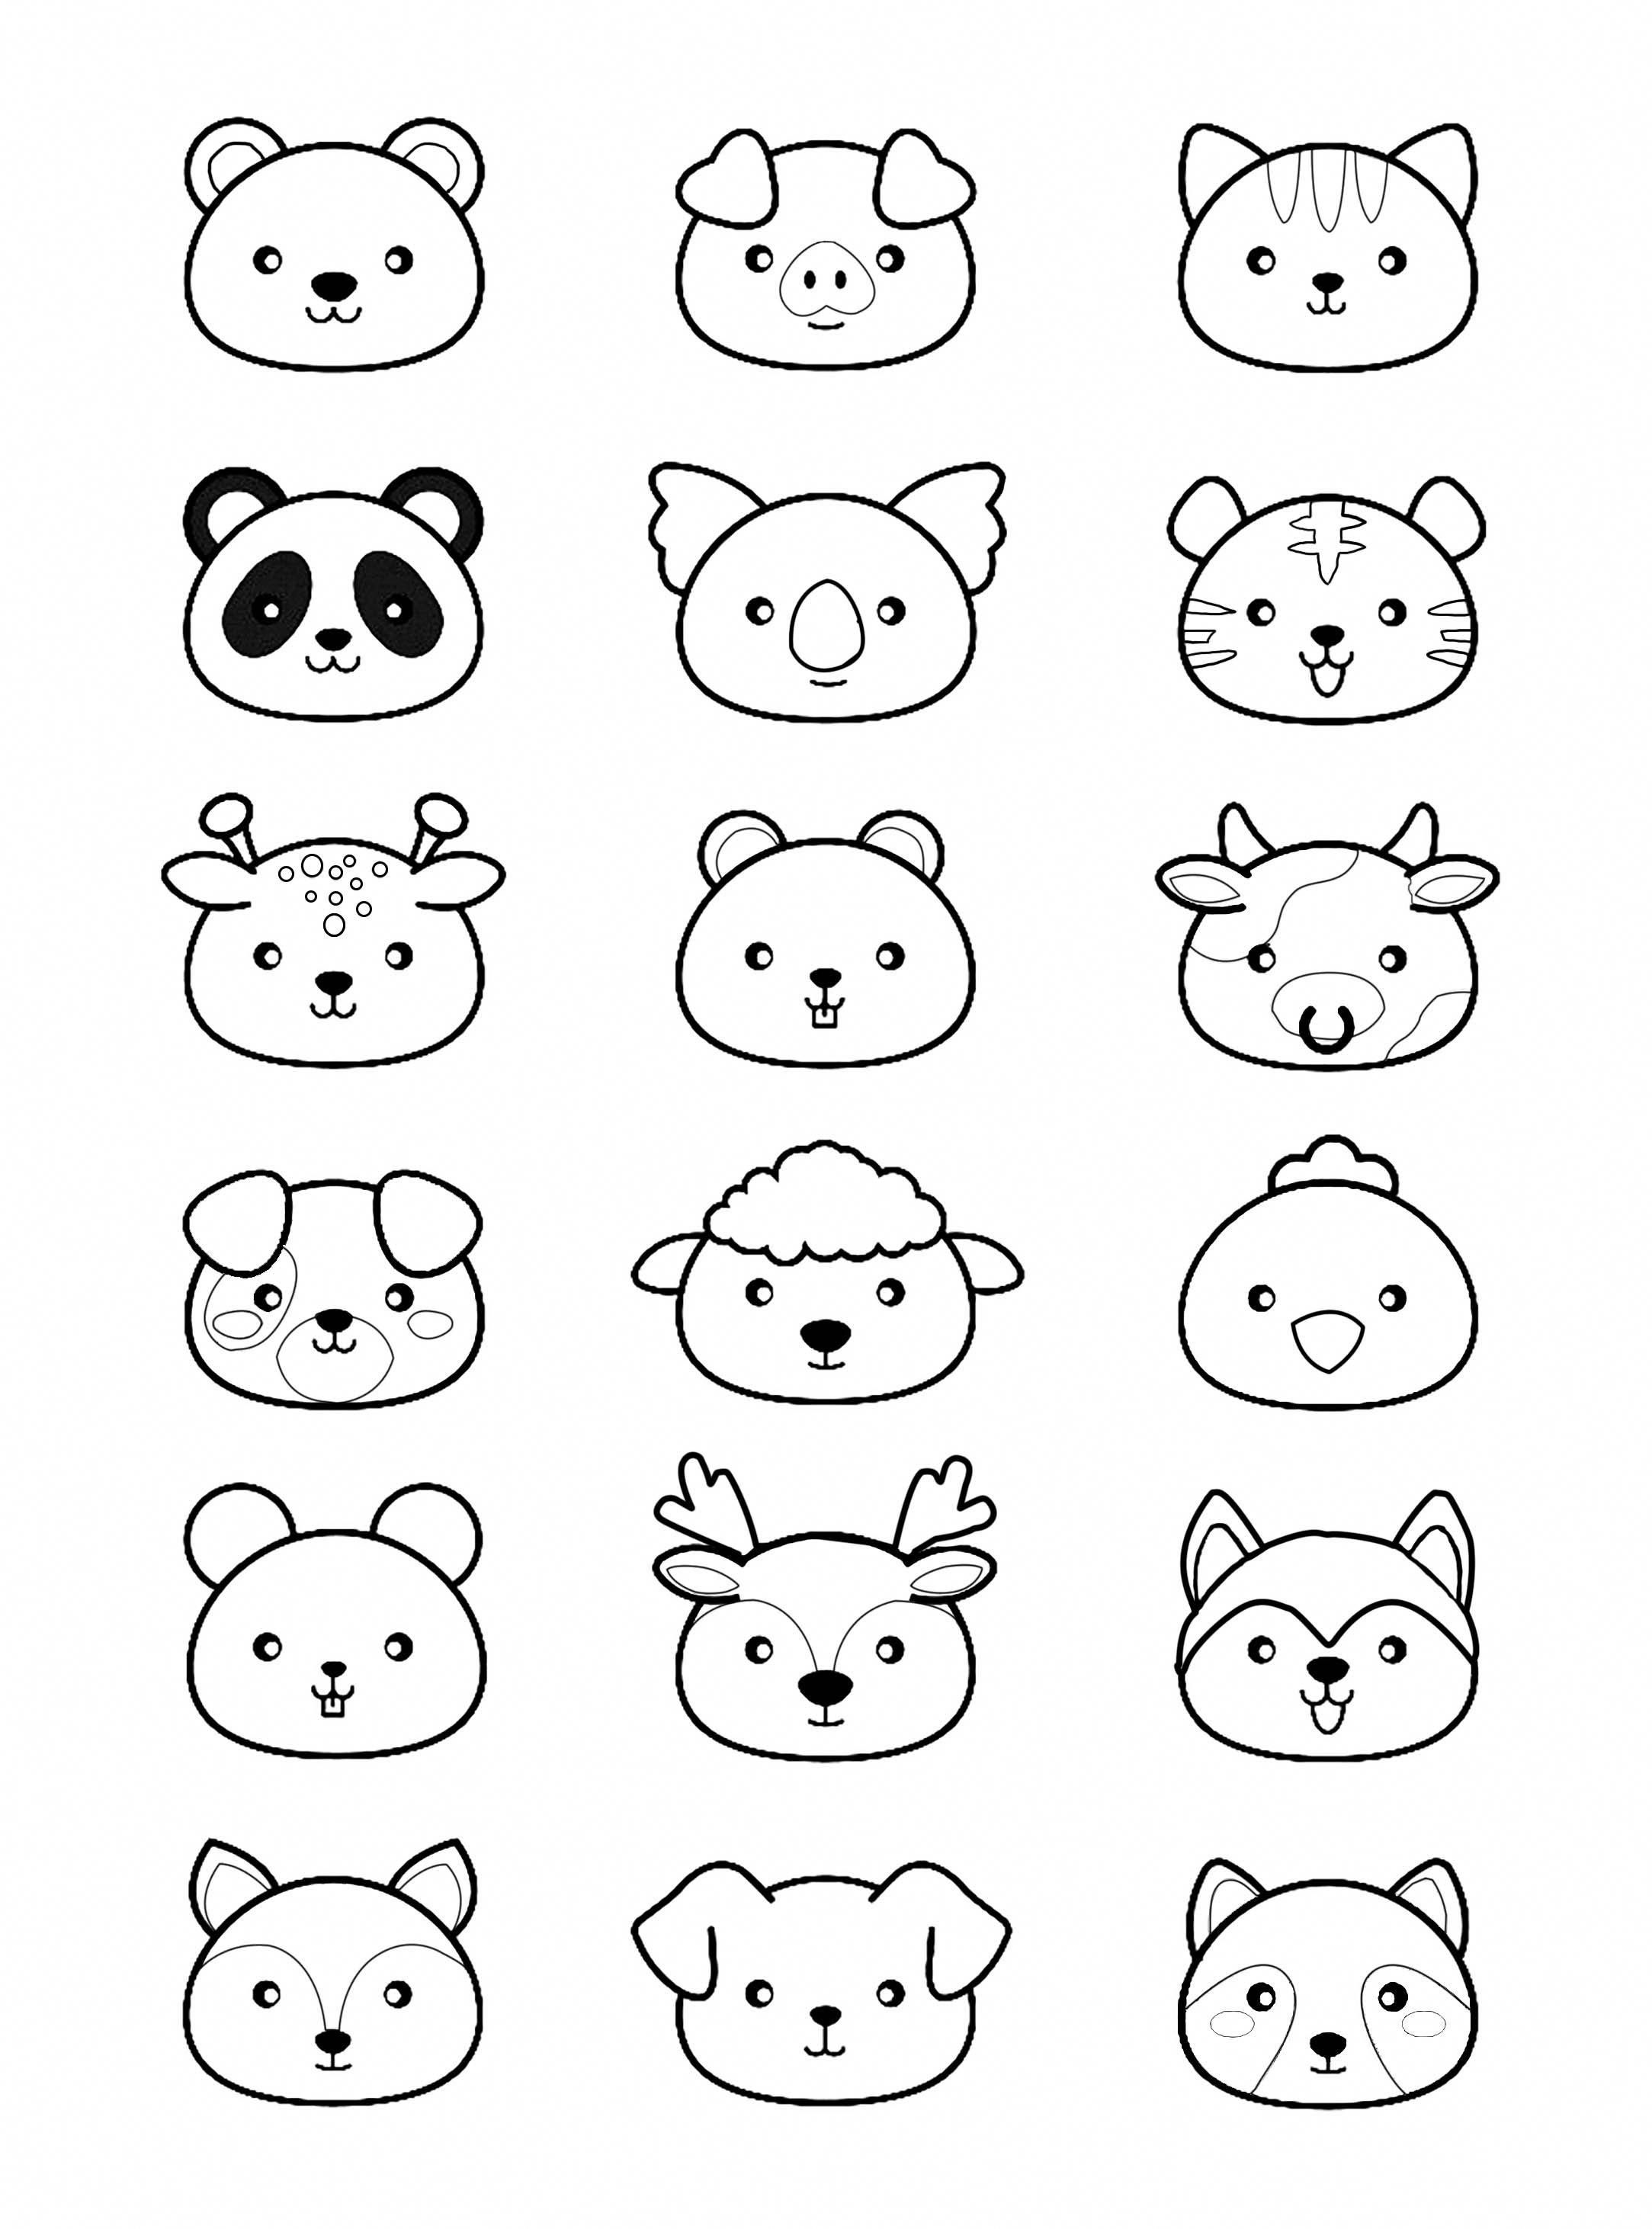 Discover Our Coloring Pages Of Panda To Print And Color For Free